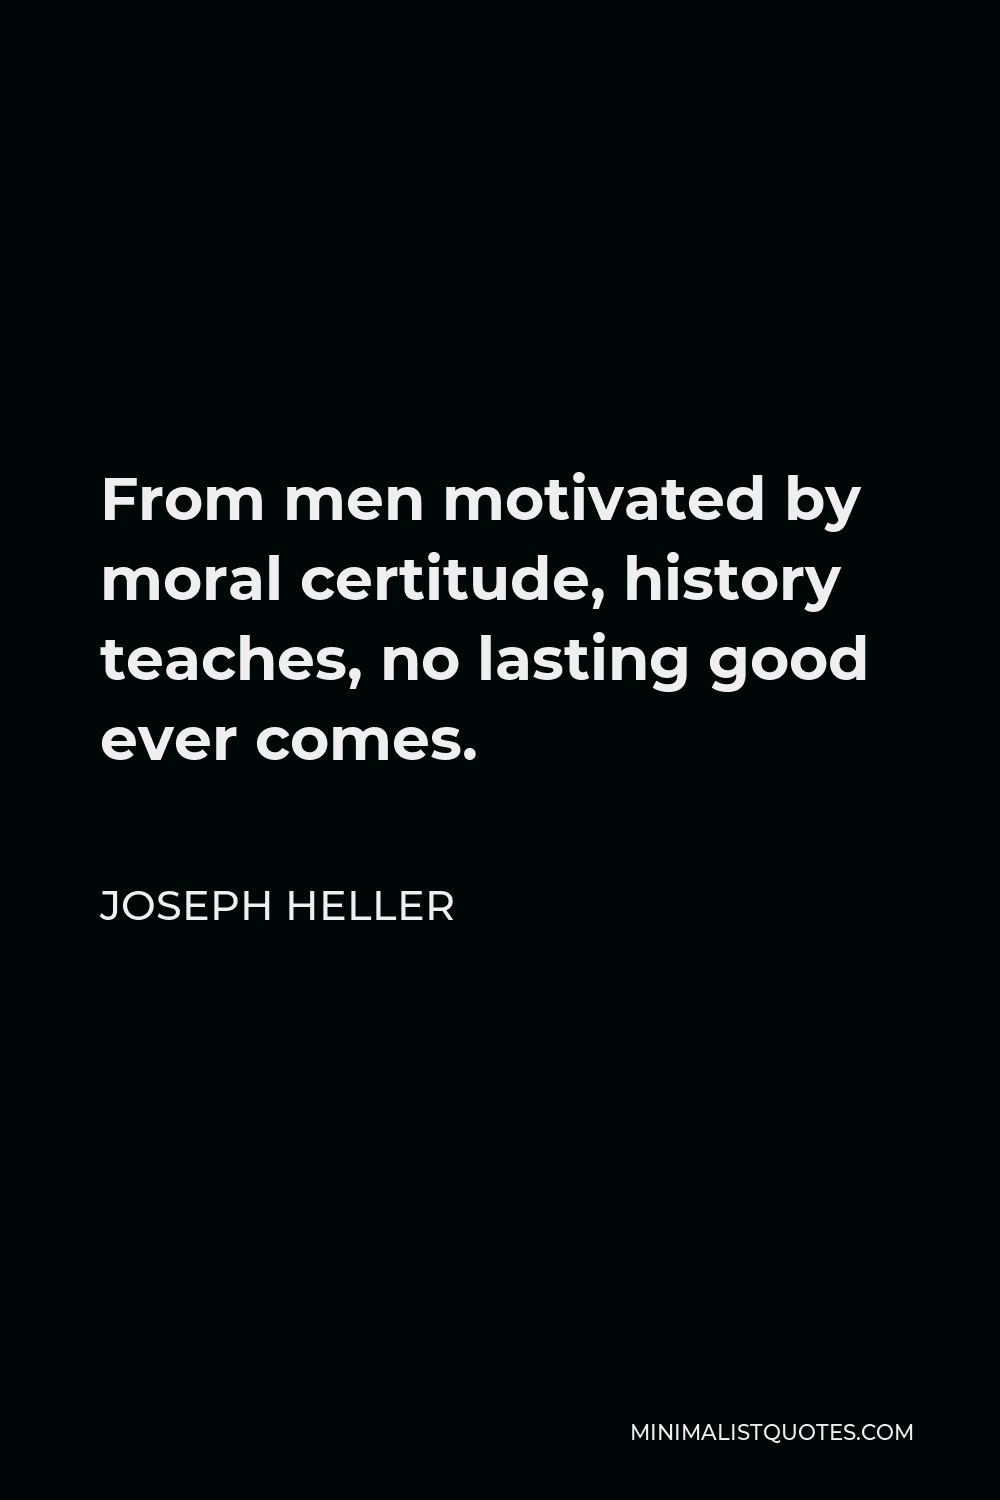 Joseph Heller Quote - From men motivated by moral certitude, history teaches, no lasting good ever comes.